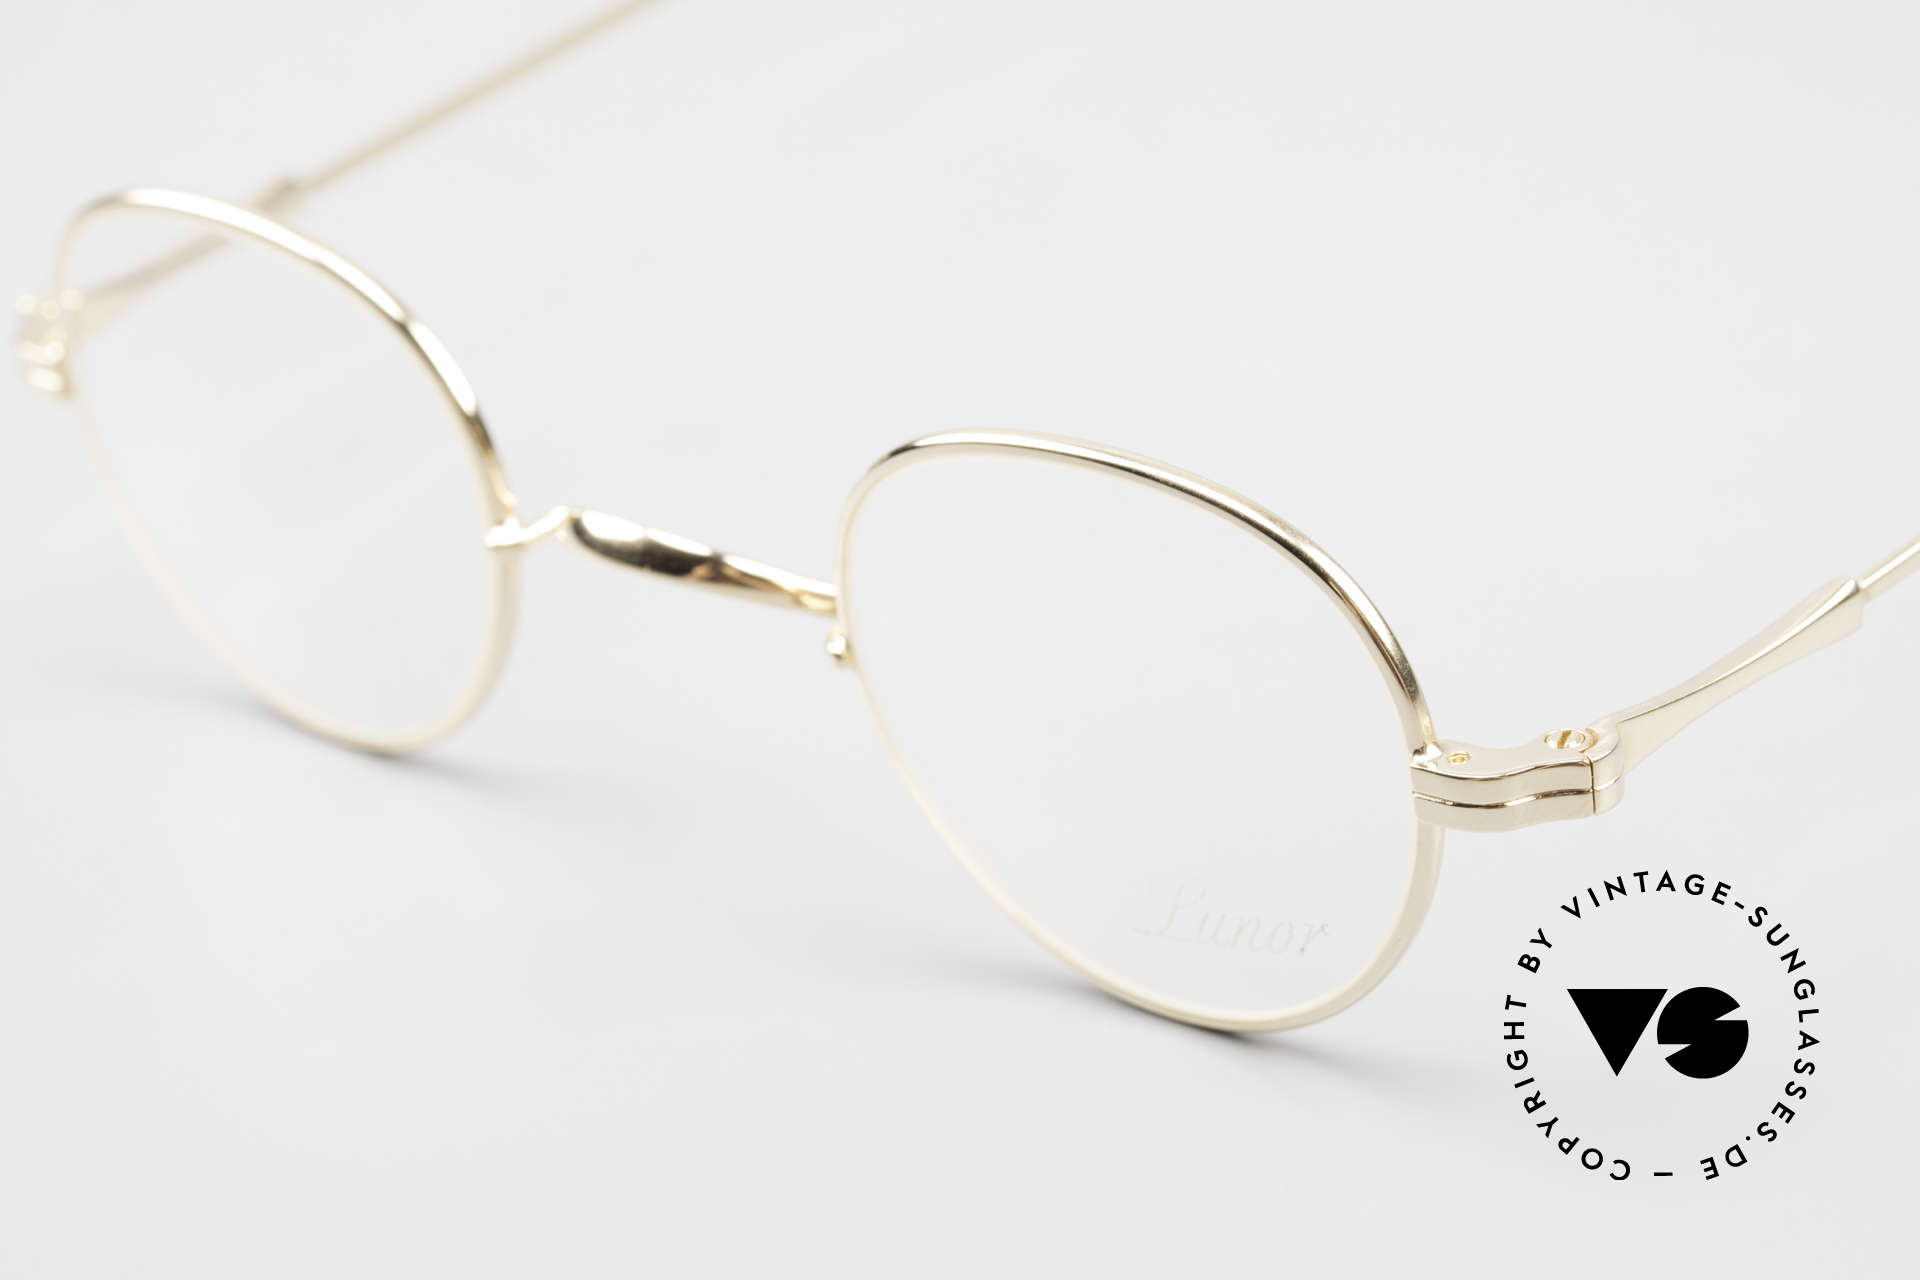 Lunor II 15 Old Panto Frame Gold Plated, traditional German brand; quality handmade in Germany, Made for Men and Women